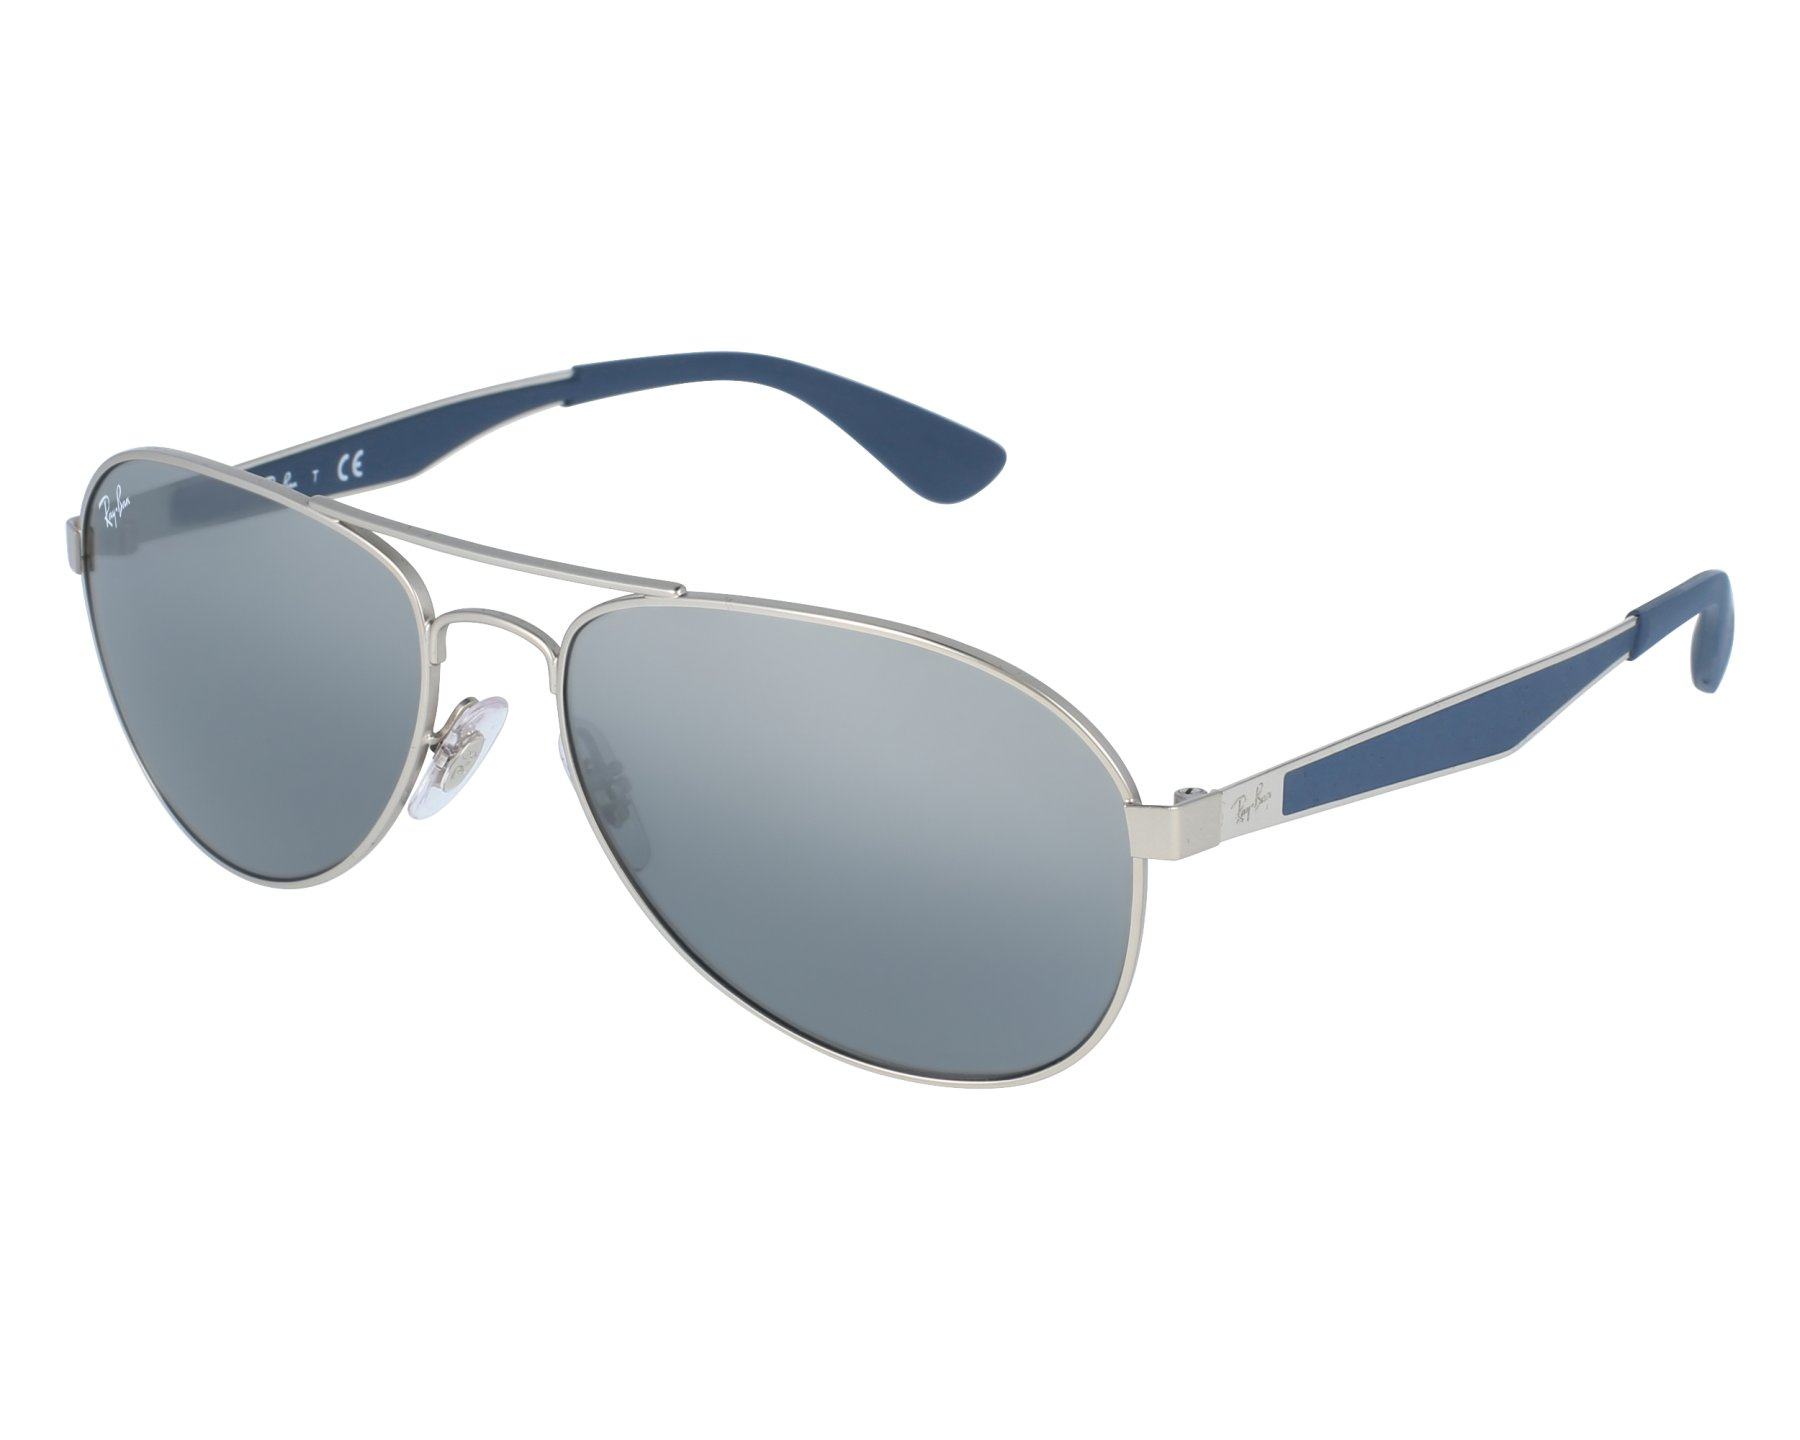 4731e1cfae Sunglasses Ray-Ban rb-3549 9012 88 58-16 Grey front view